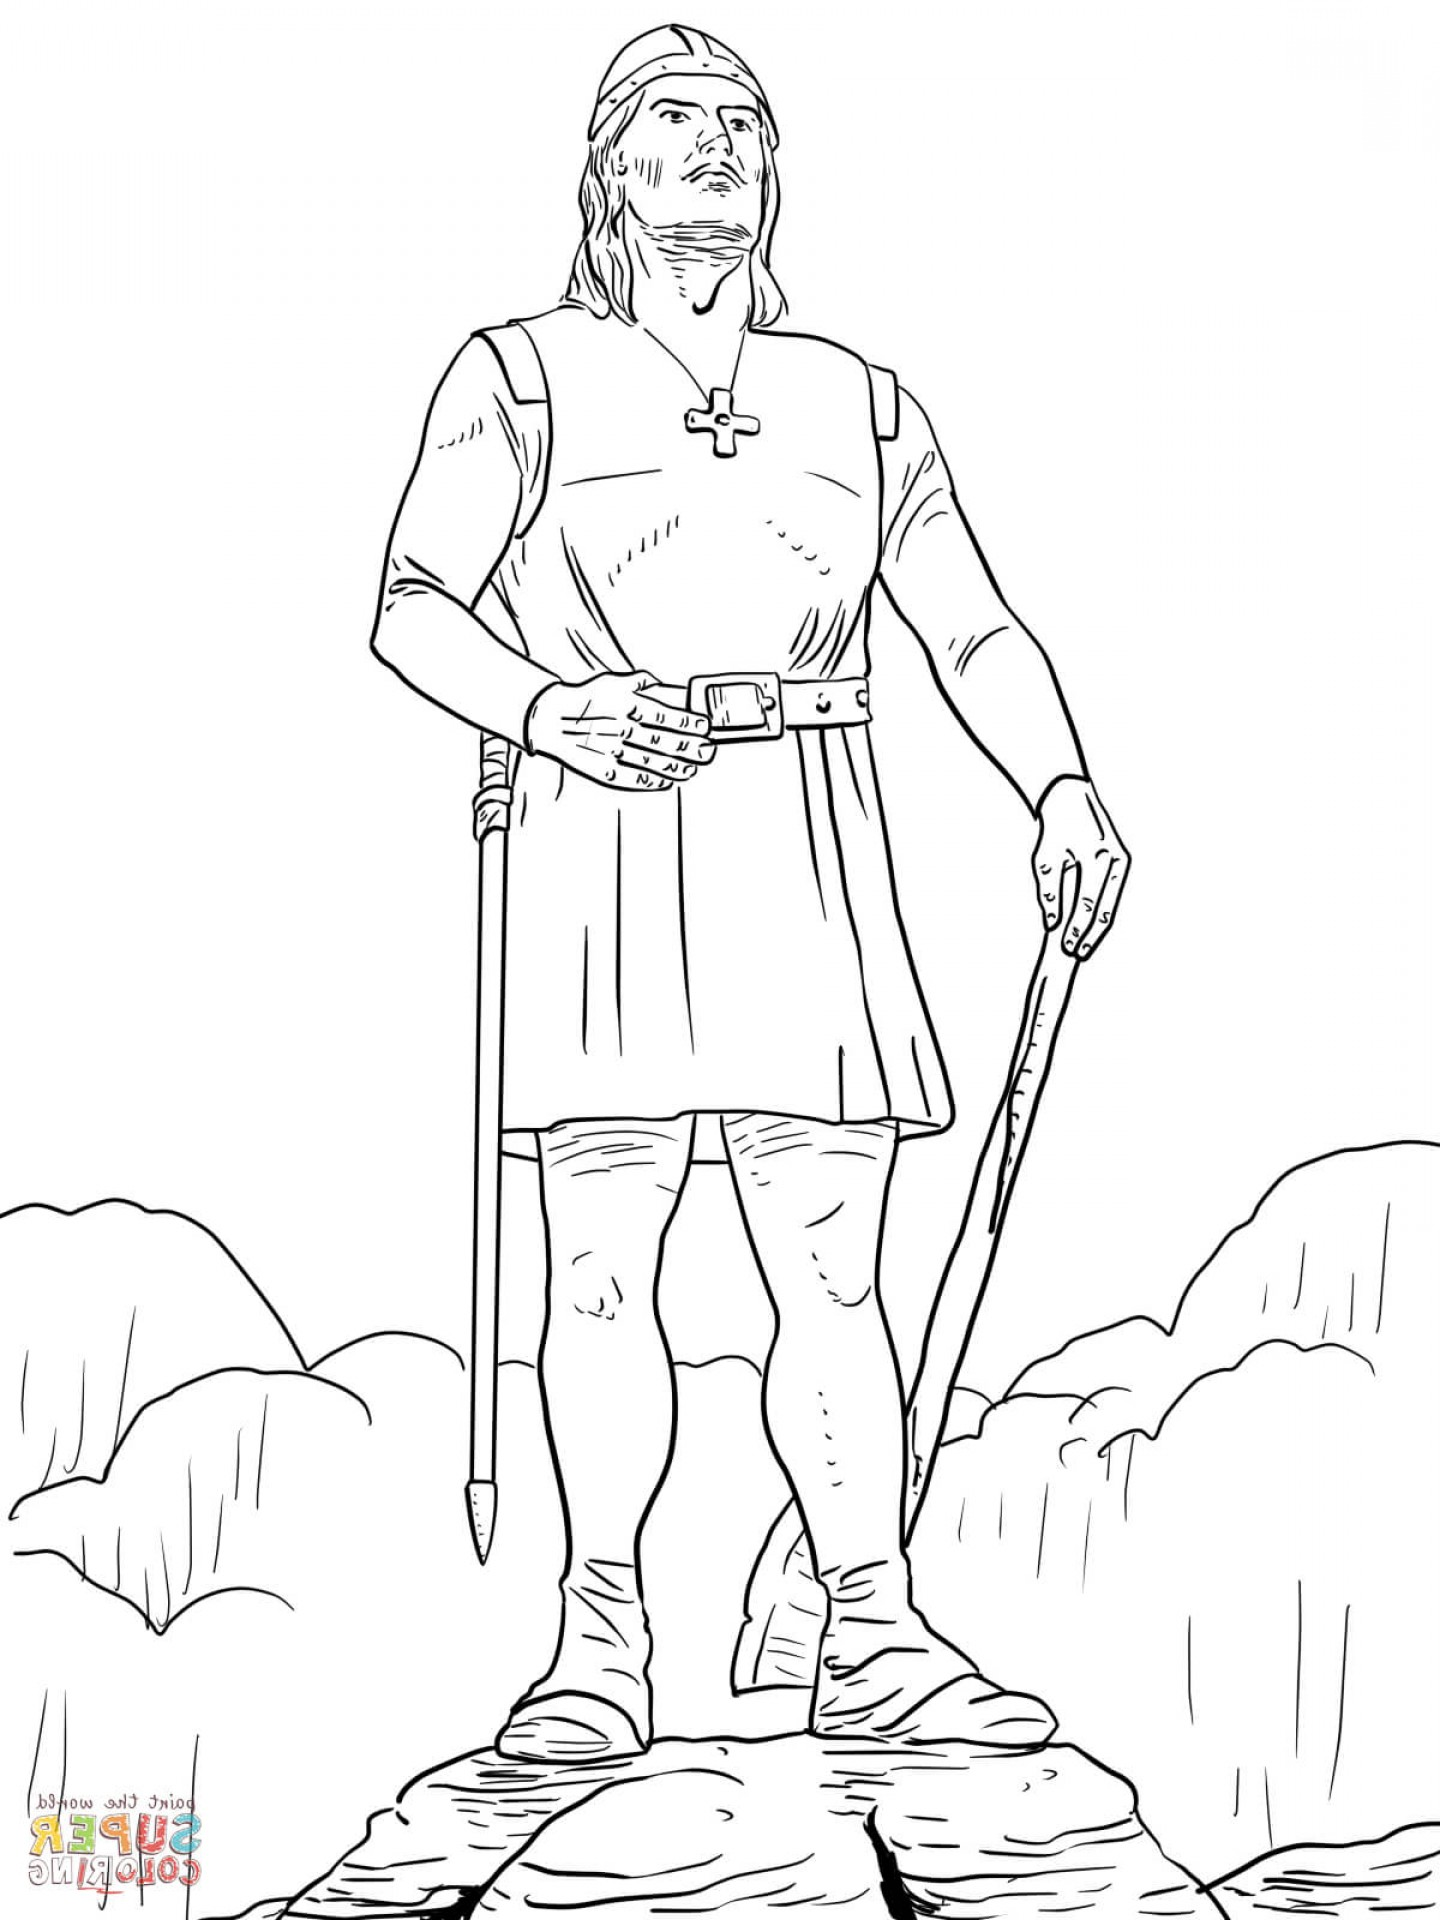 viking coloring page viking coloring pages to download and print for free page coloring viking